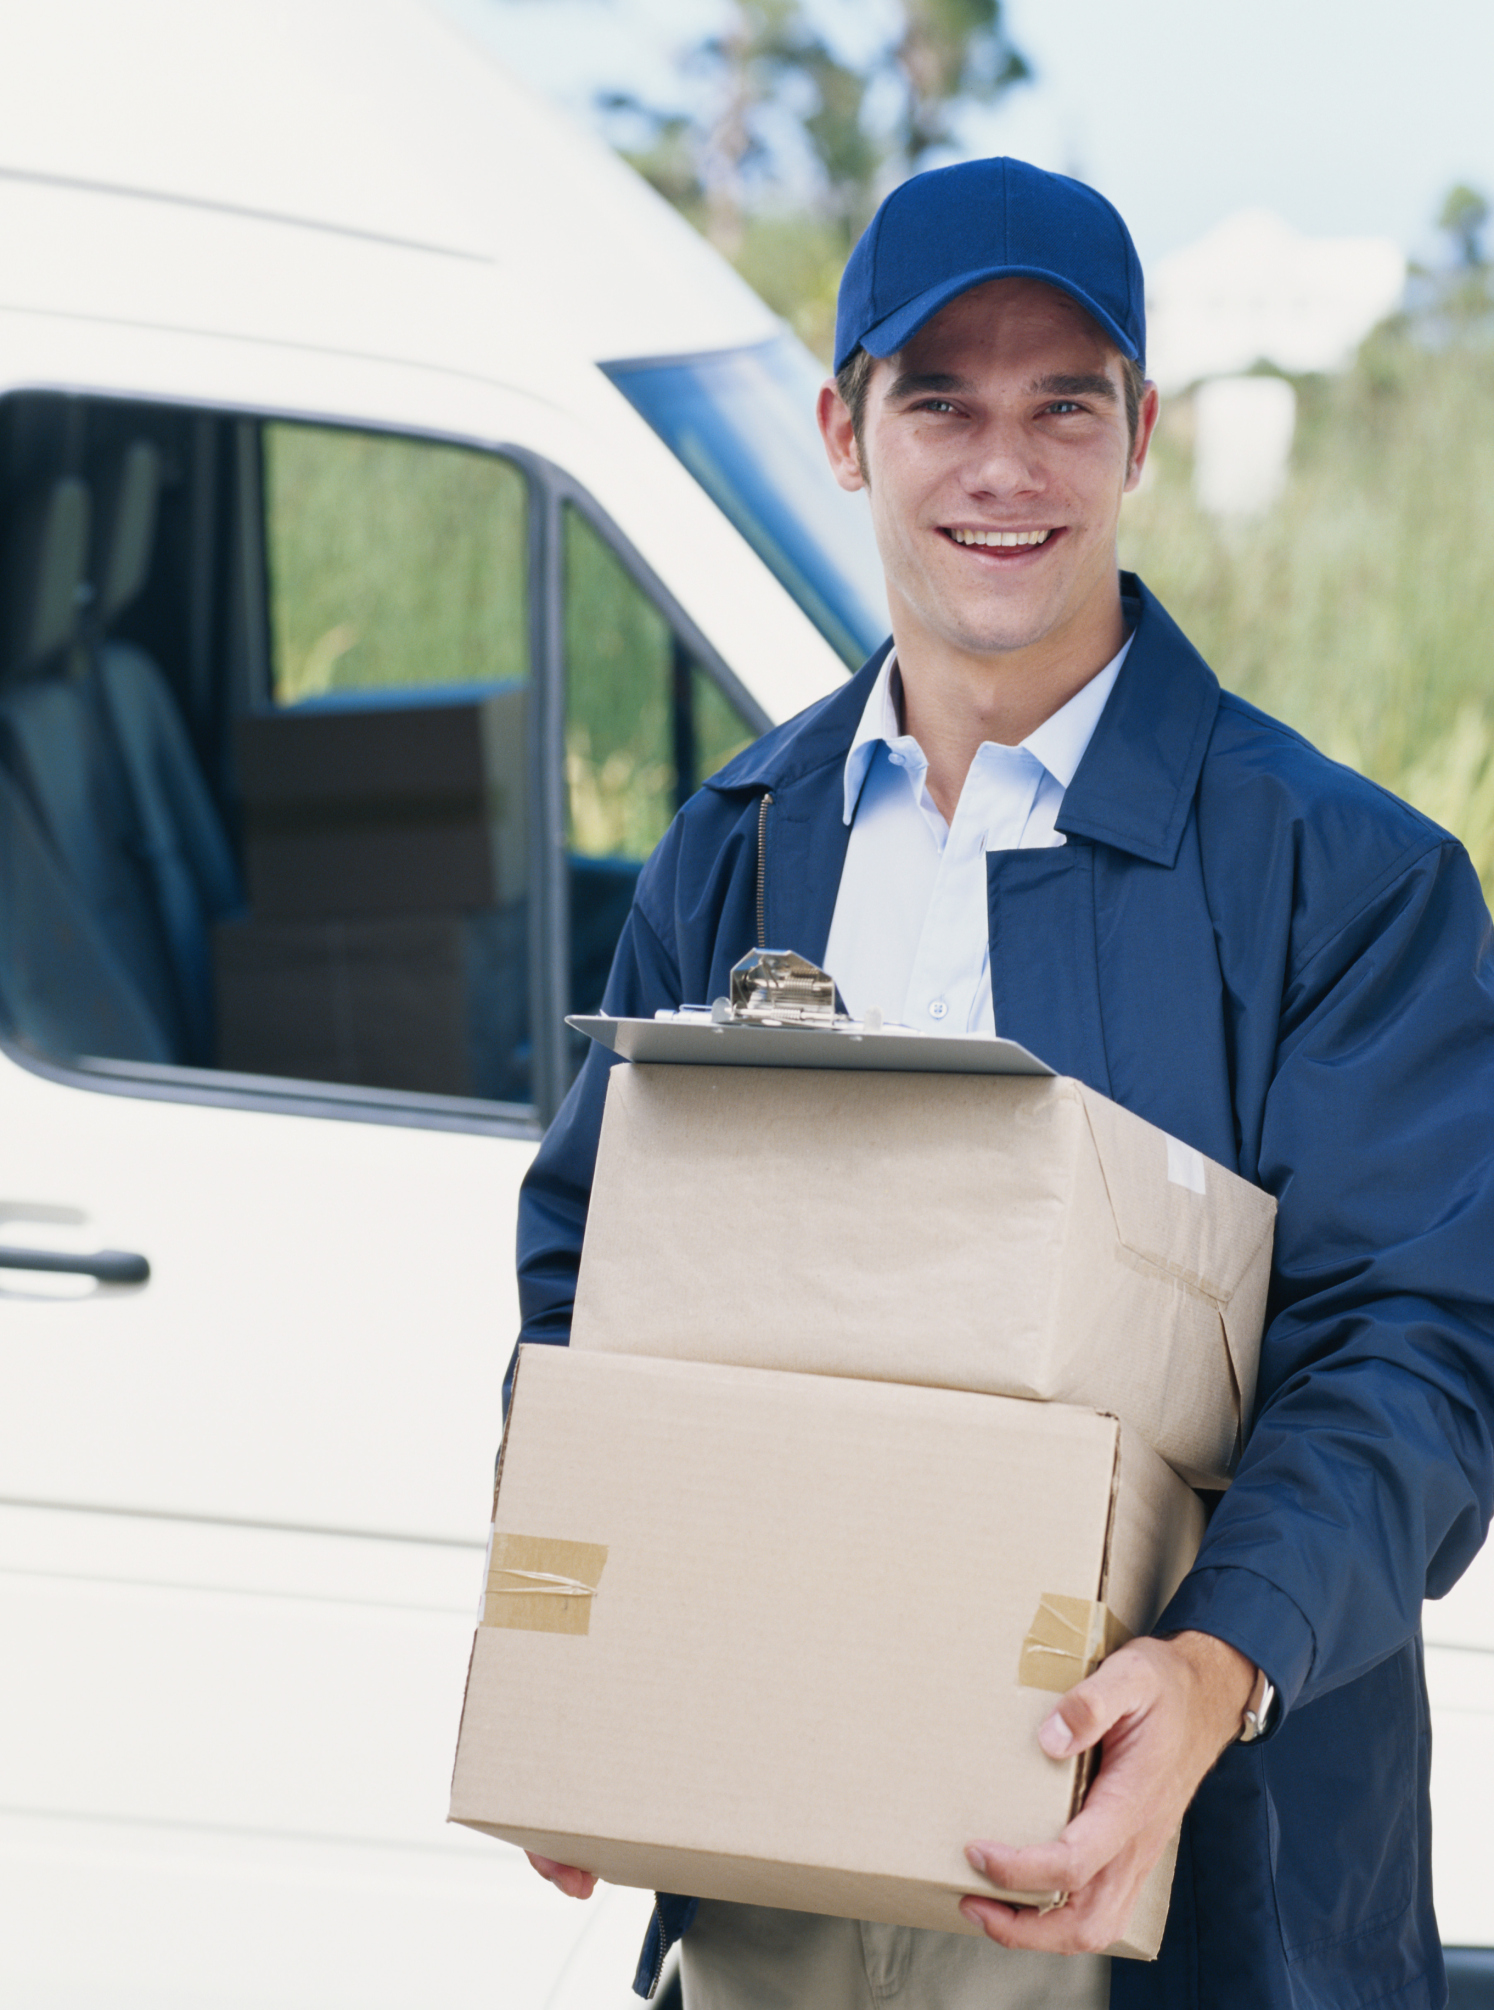 How Can I Get a Job Delivering Cars? | Career Trend